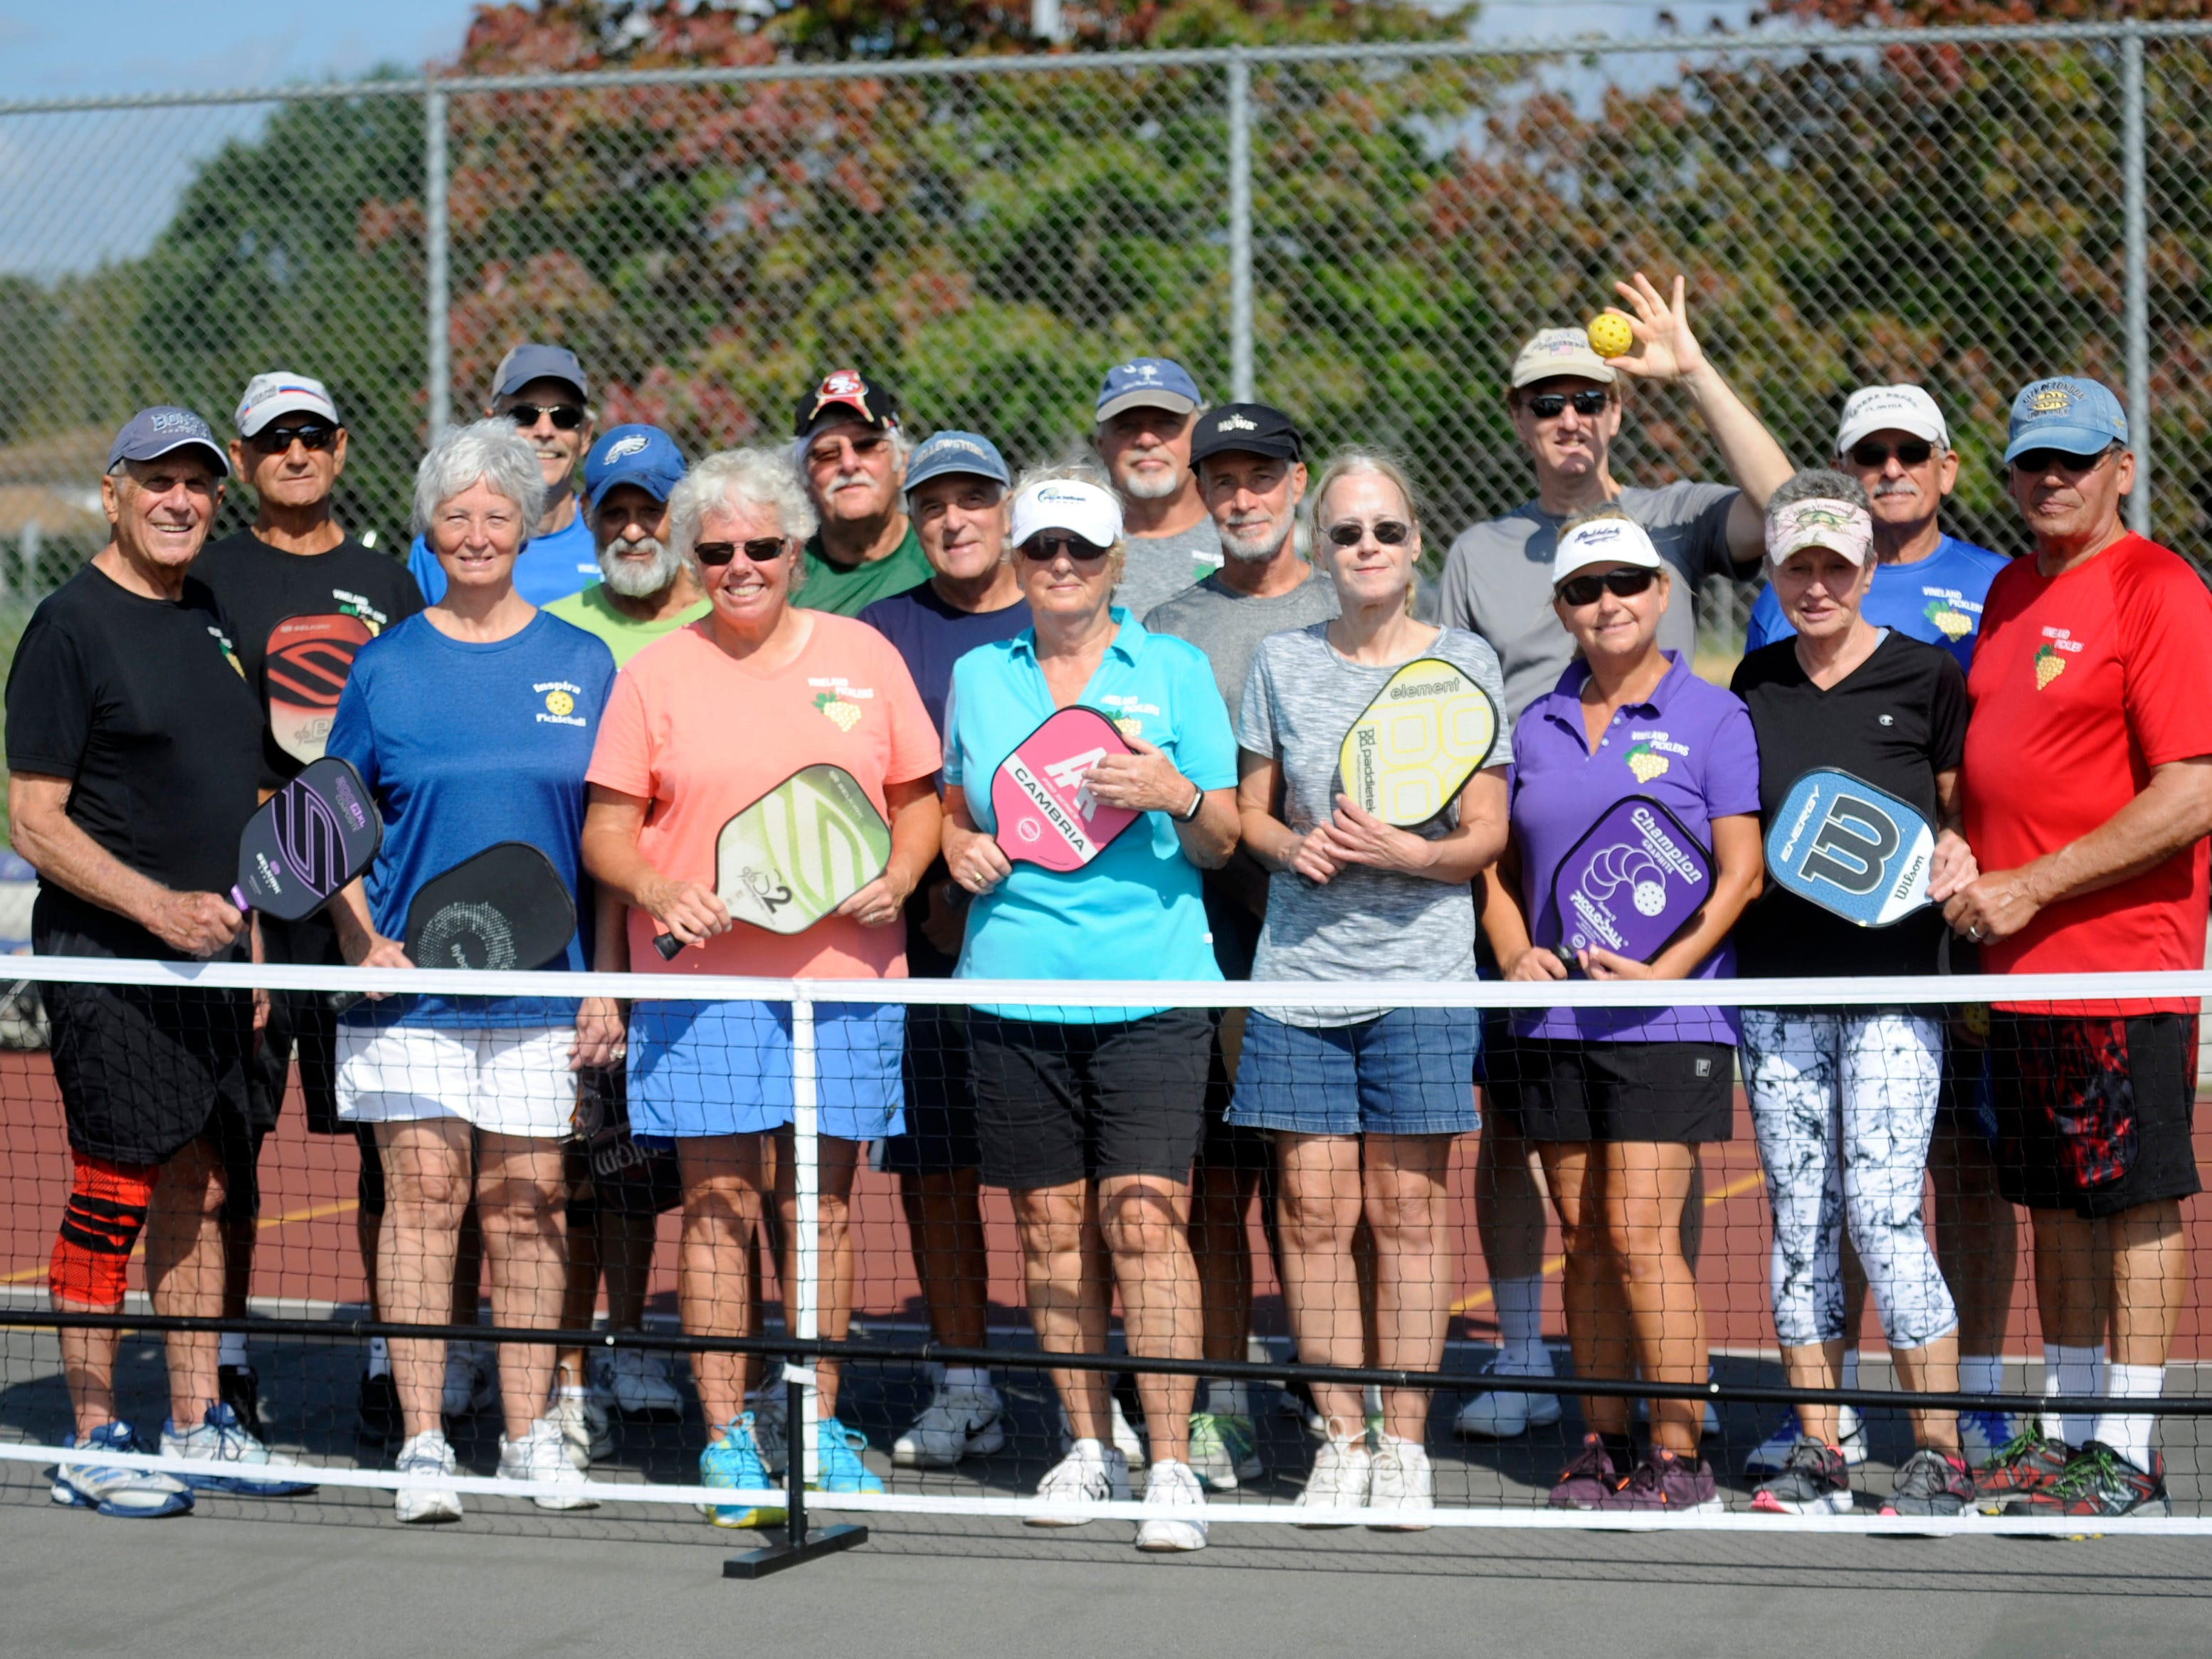 Members of the Vineland Picklers play pickleball which is a racket sport that combines elements of badminton, pingpong and tennis.